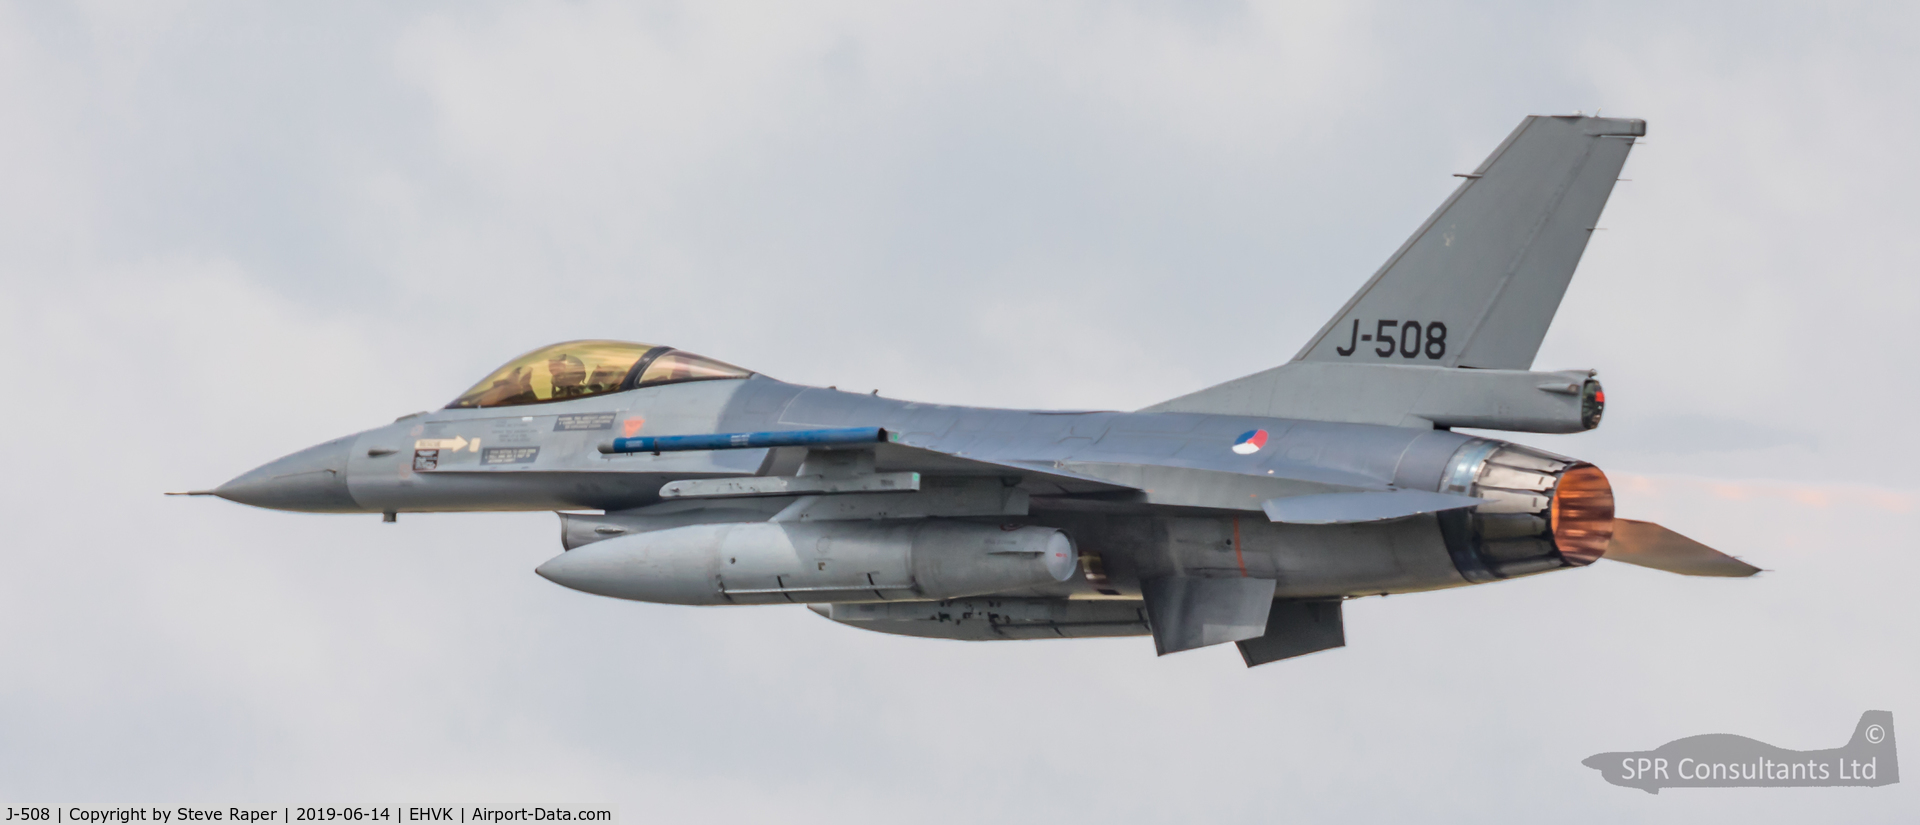 J-508, 1987 Fokker F-16A Fighting Falcon C/N 6D-147, Royal Netherlands Air Force Base Volkel air day 14 June 2019